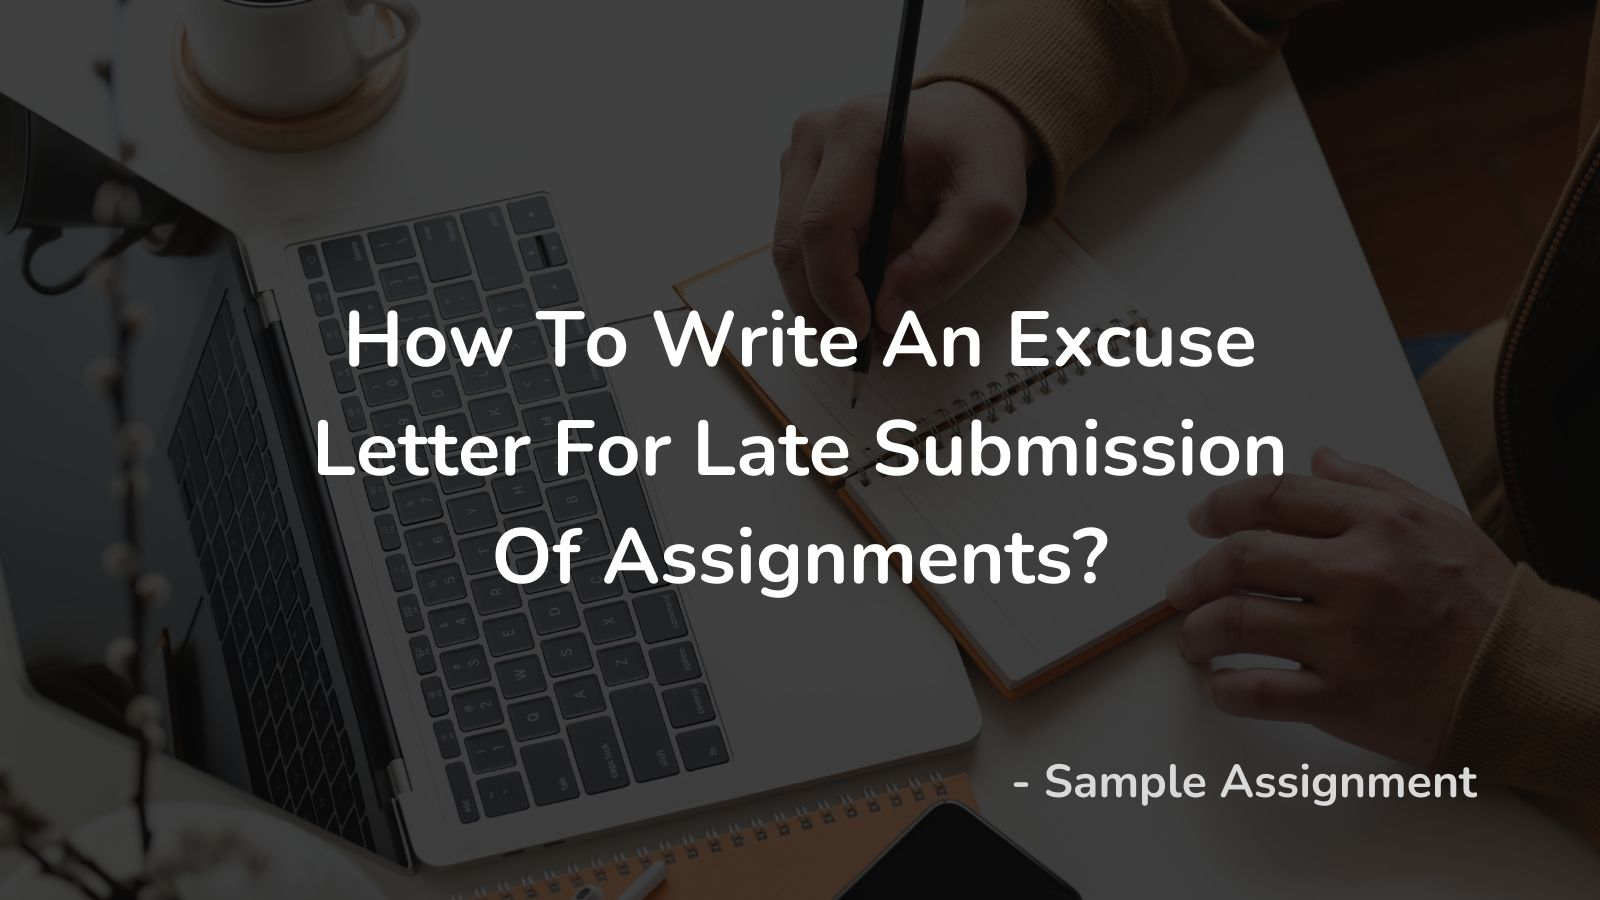 Excuse Letter For Late Submission Of Assignments